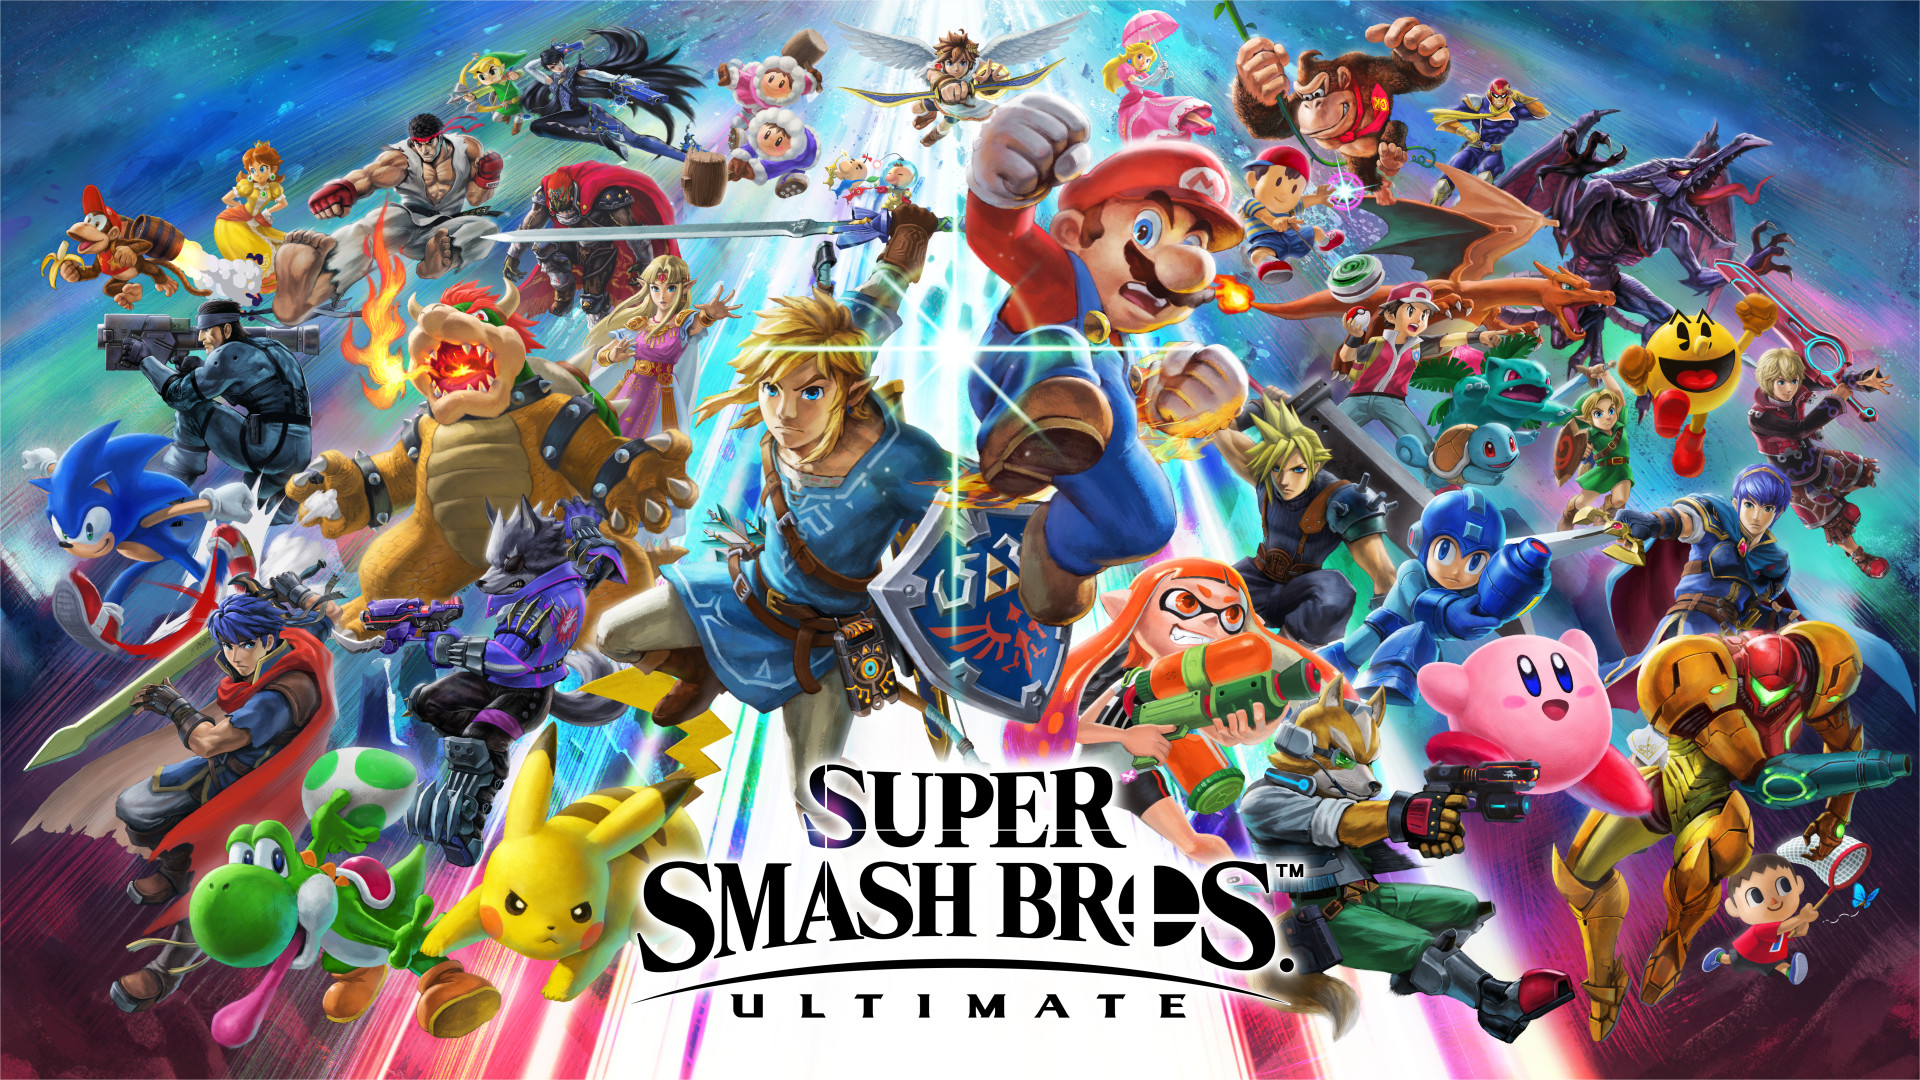 1920x1080 230 Super Smash Bros. Ultimate HD Wallpapers | Hintergründe - Wallpaper  Abyss